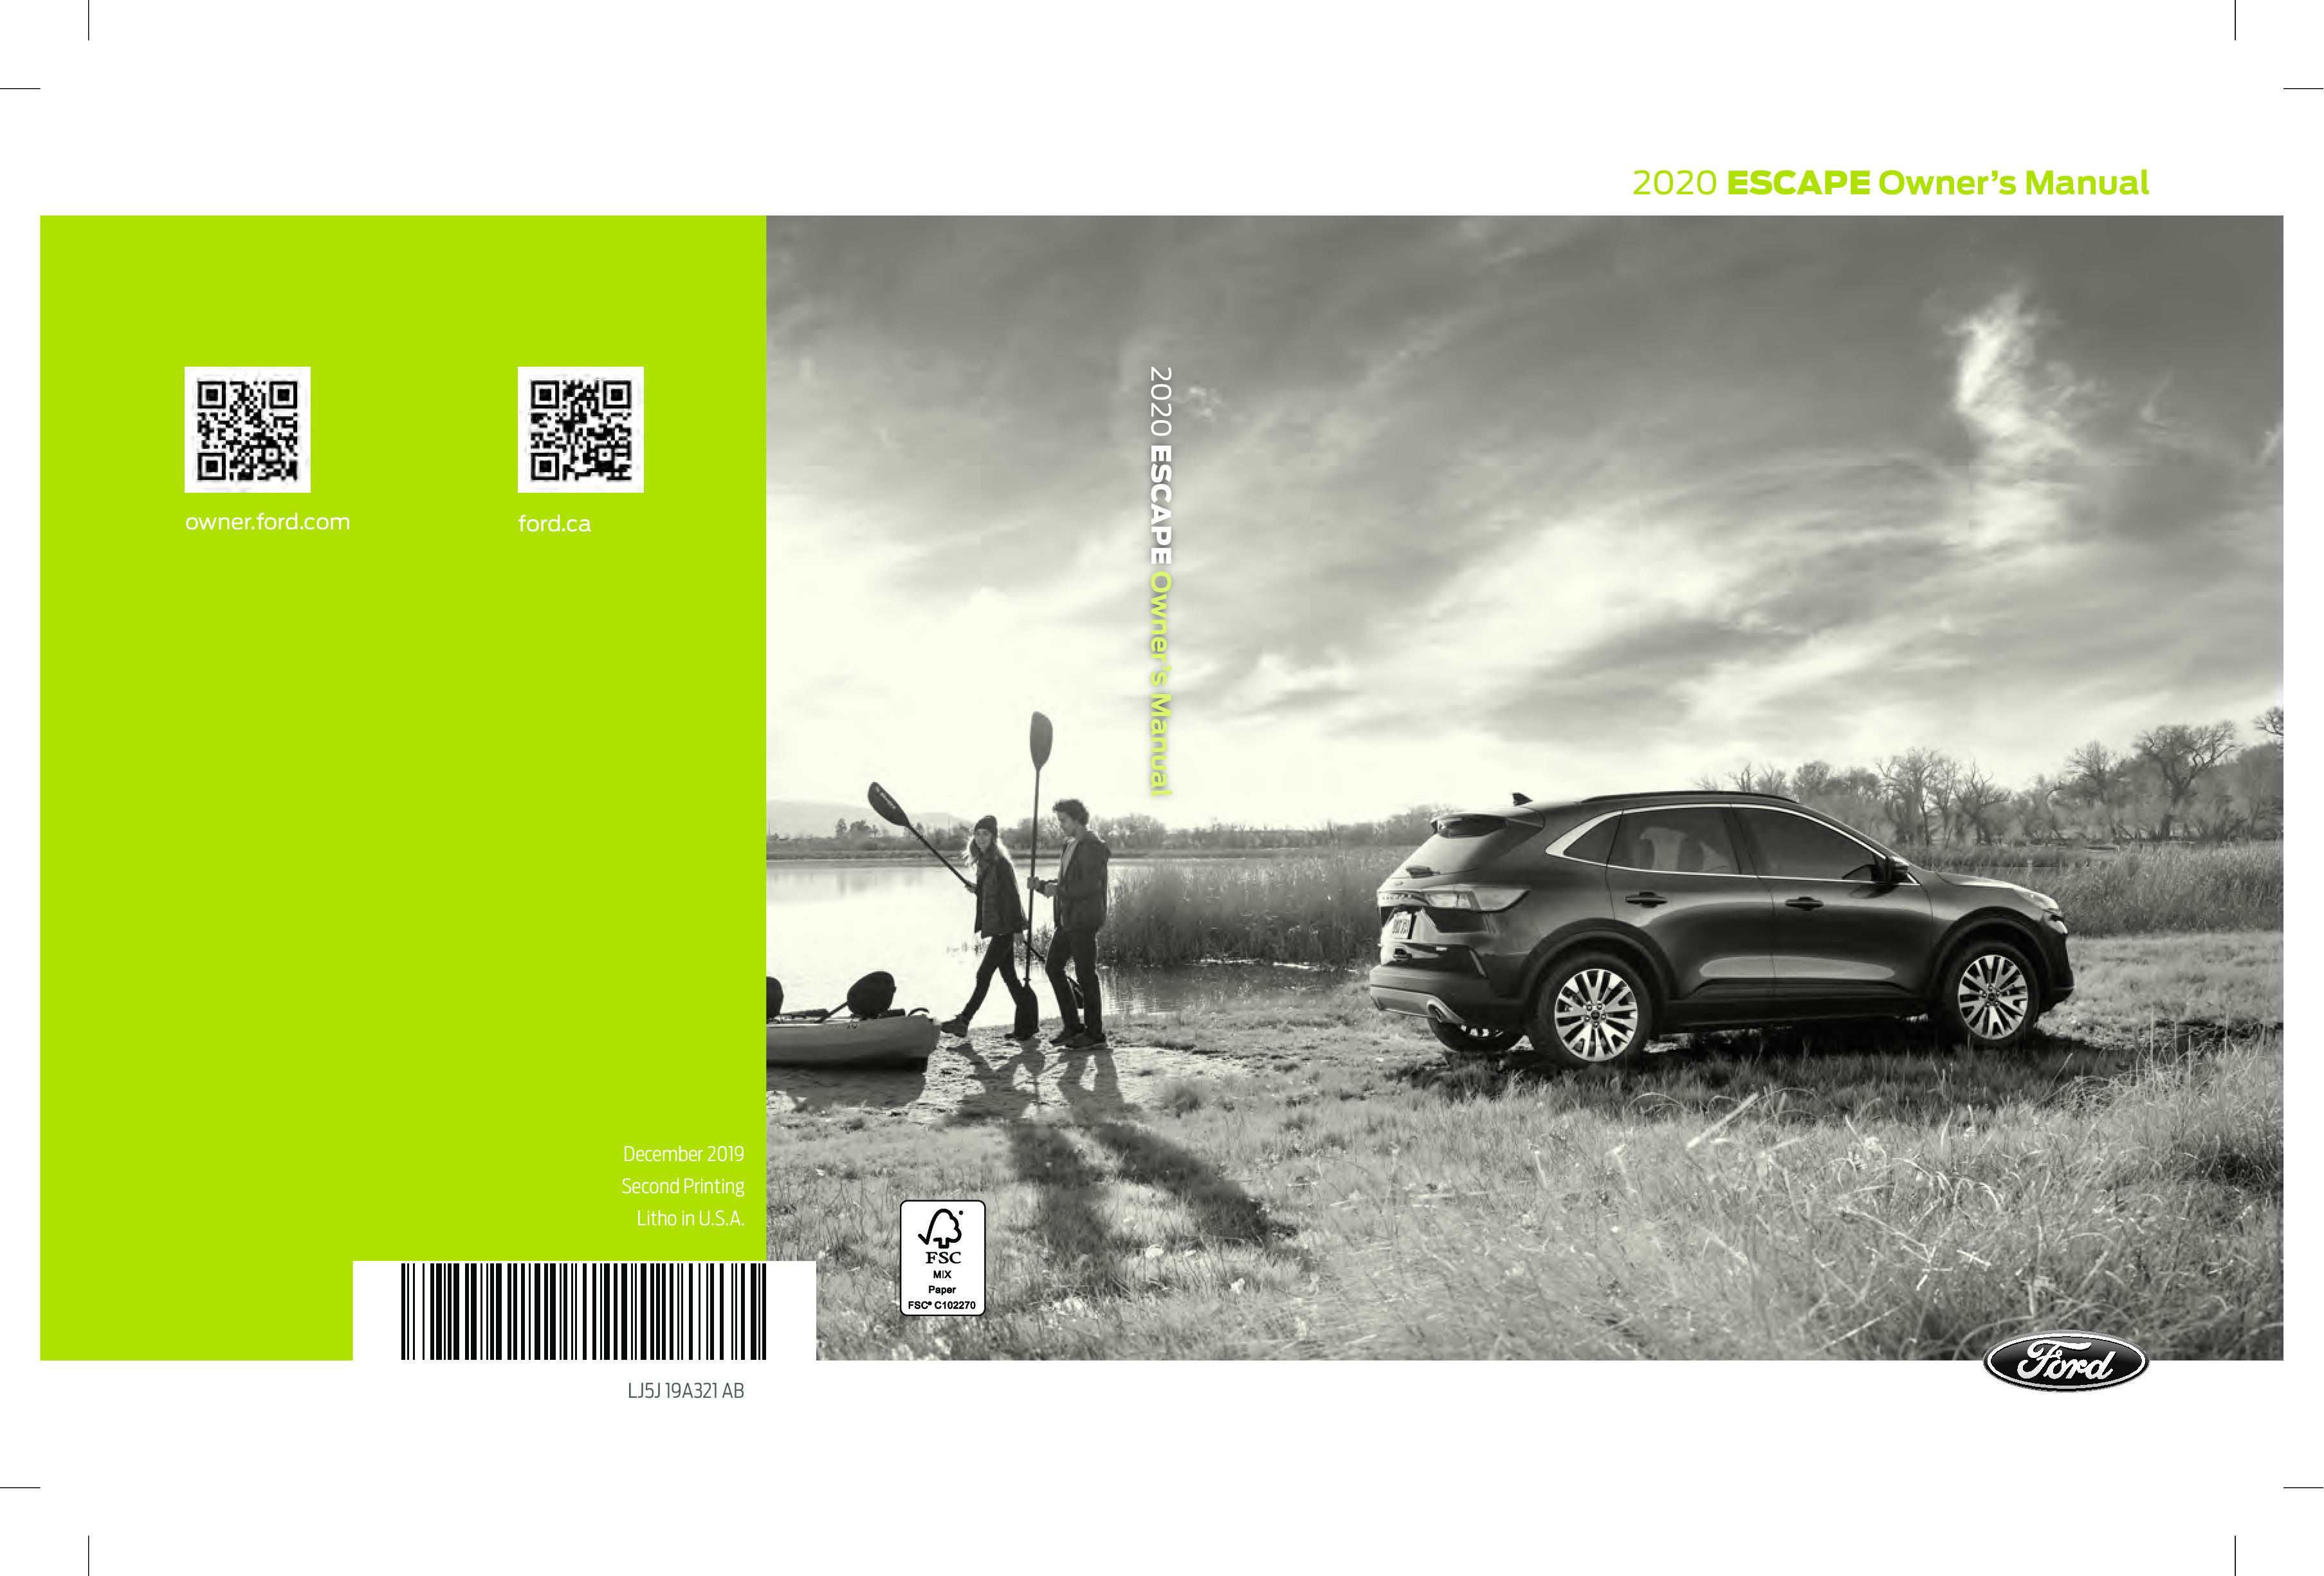 2020 Ford Escape owners manual